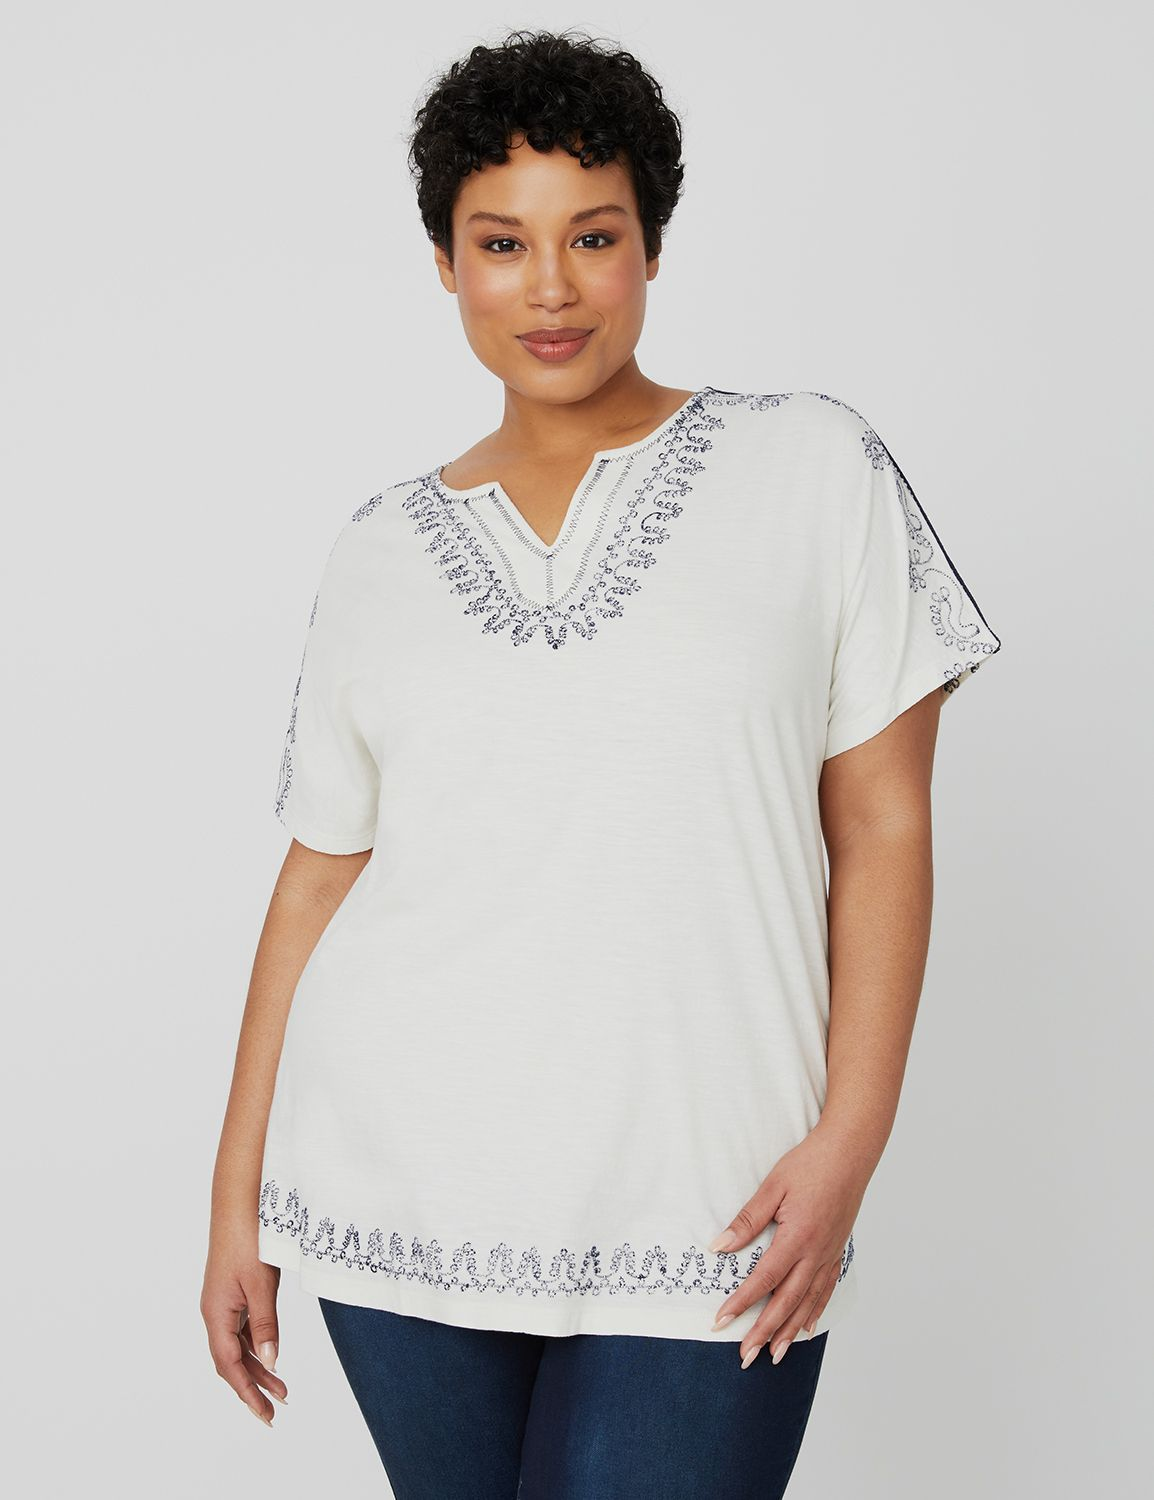 Embroidered Melody Top 1089840 EMBROIDERED SPLIT NECK MP-300099869